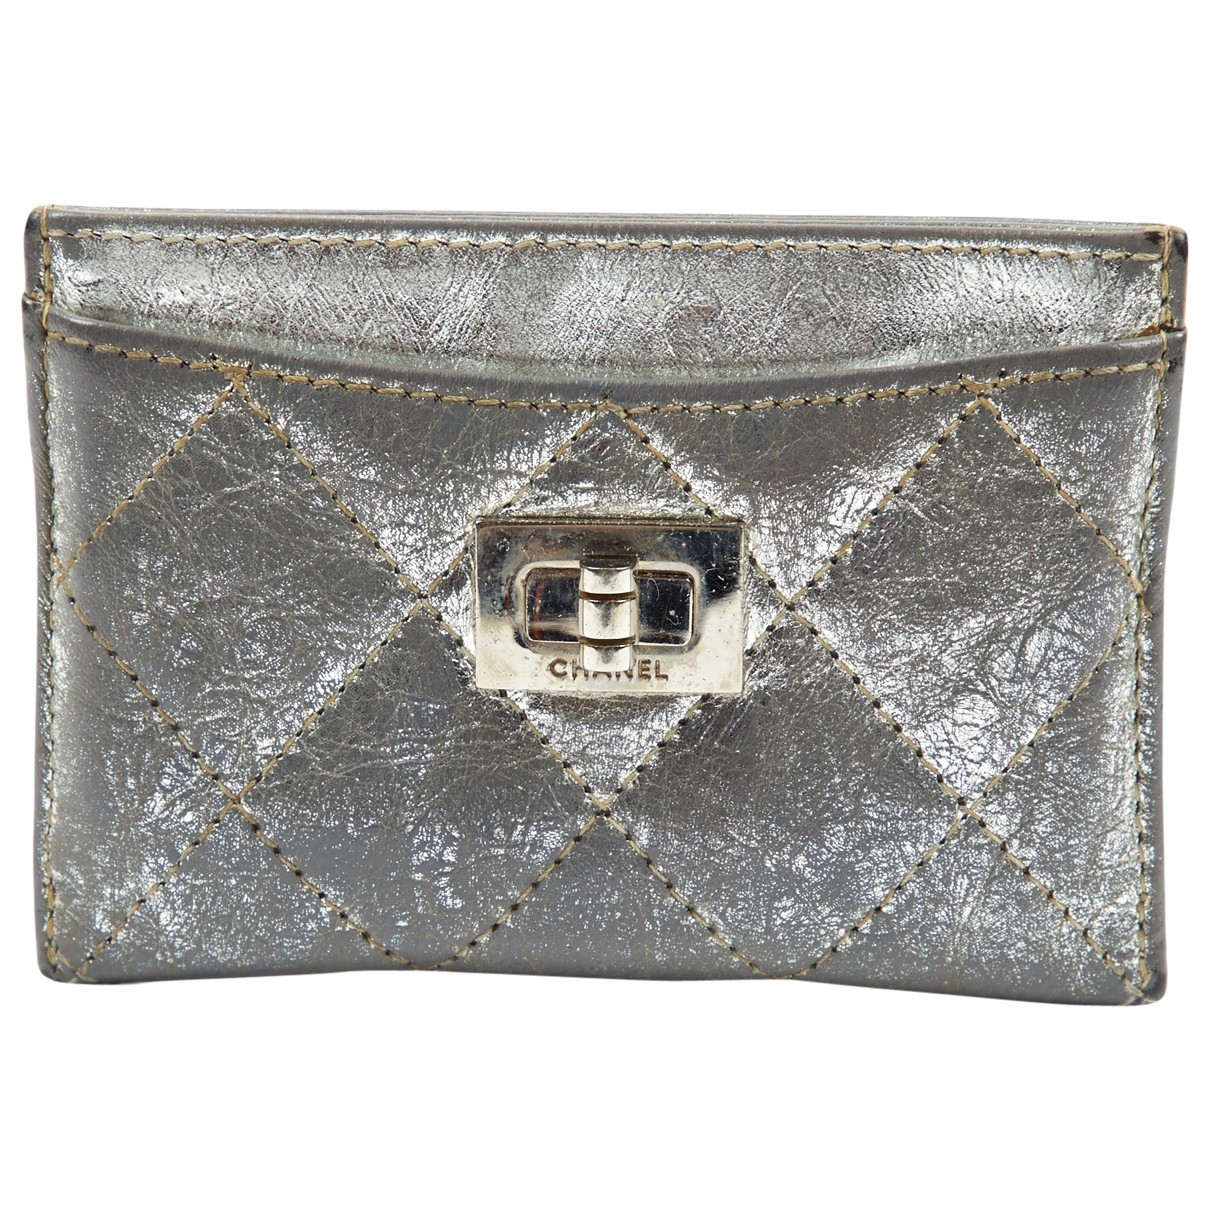 Chanel 2.55 Silver Leather Purses, wallet & cases for Women N